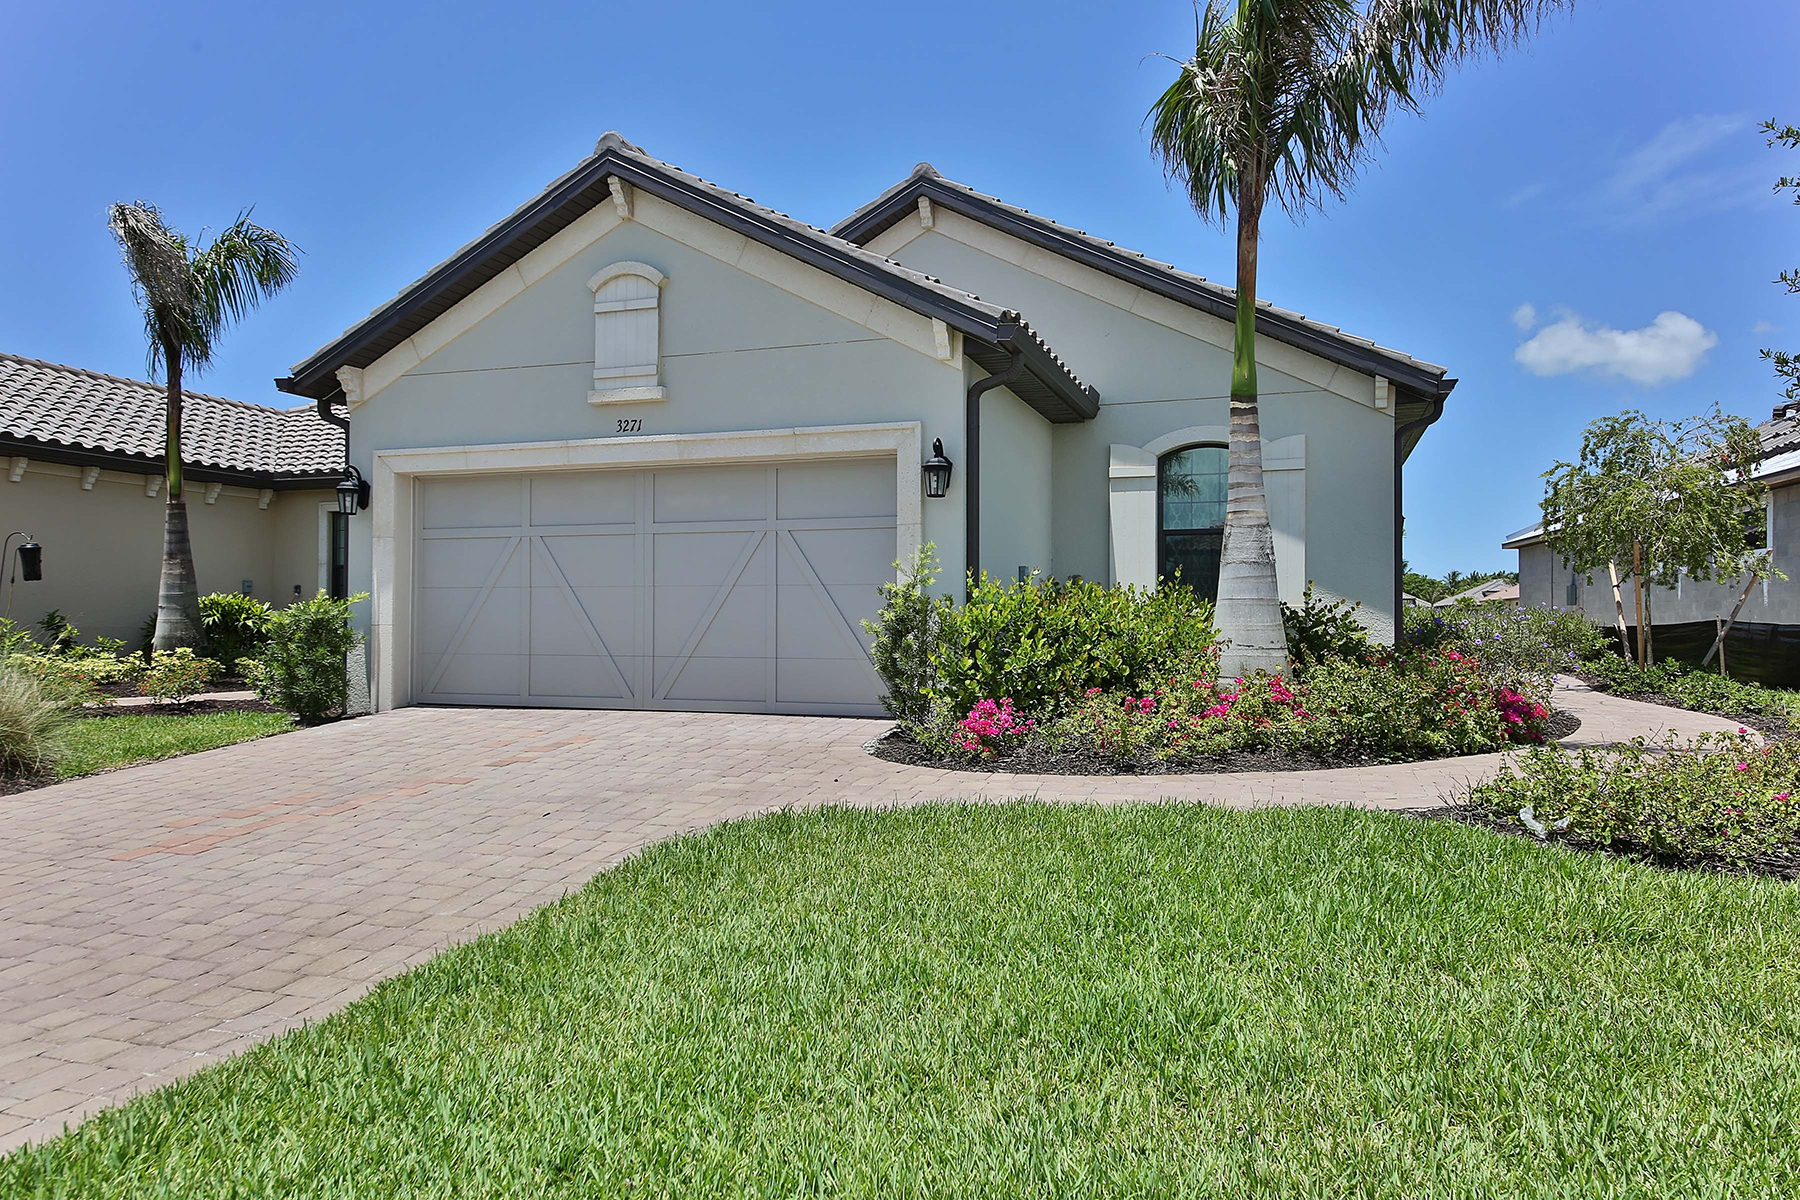 Single Family Home for Rent at FIDDLERS CREEK - OYSTER HARBOR 3271 Miyagi Ln Naples, Florida 34114 United States